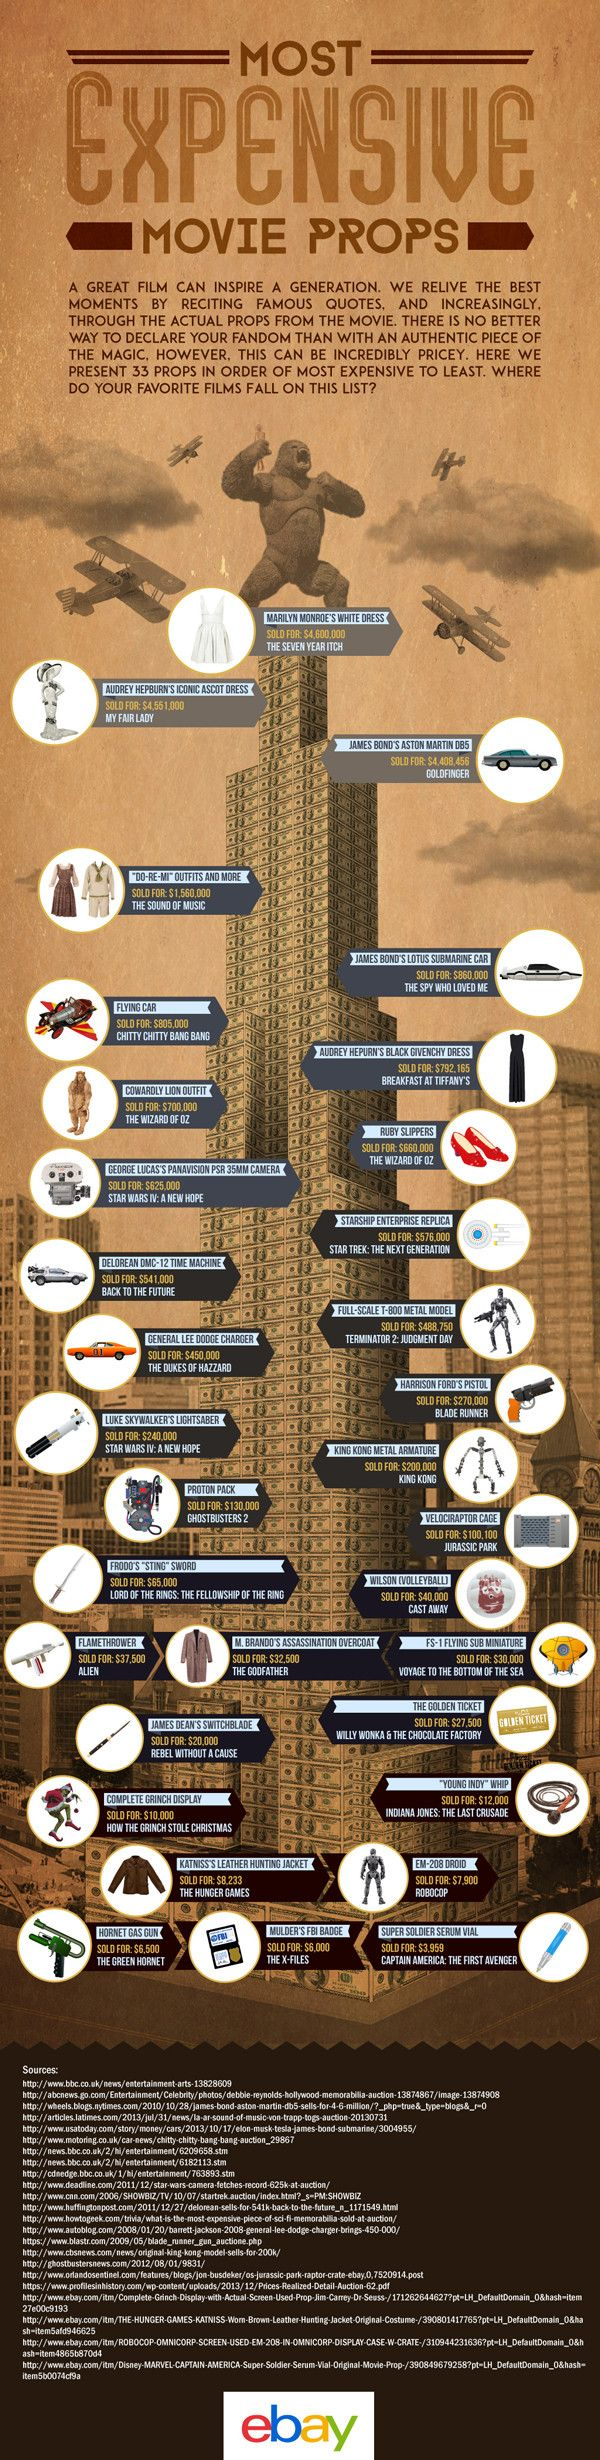 The World's Most Expensive Movie Props [infographic]